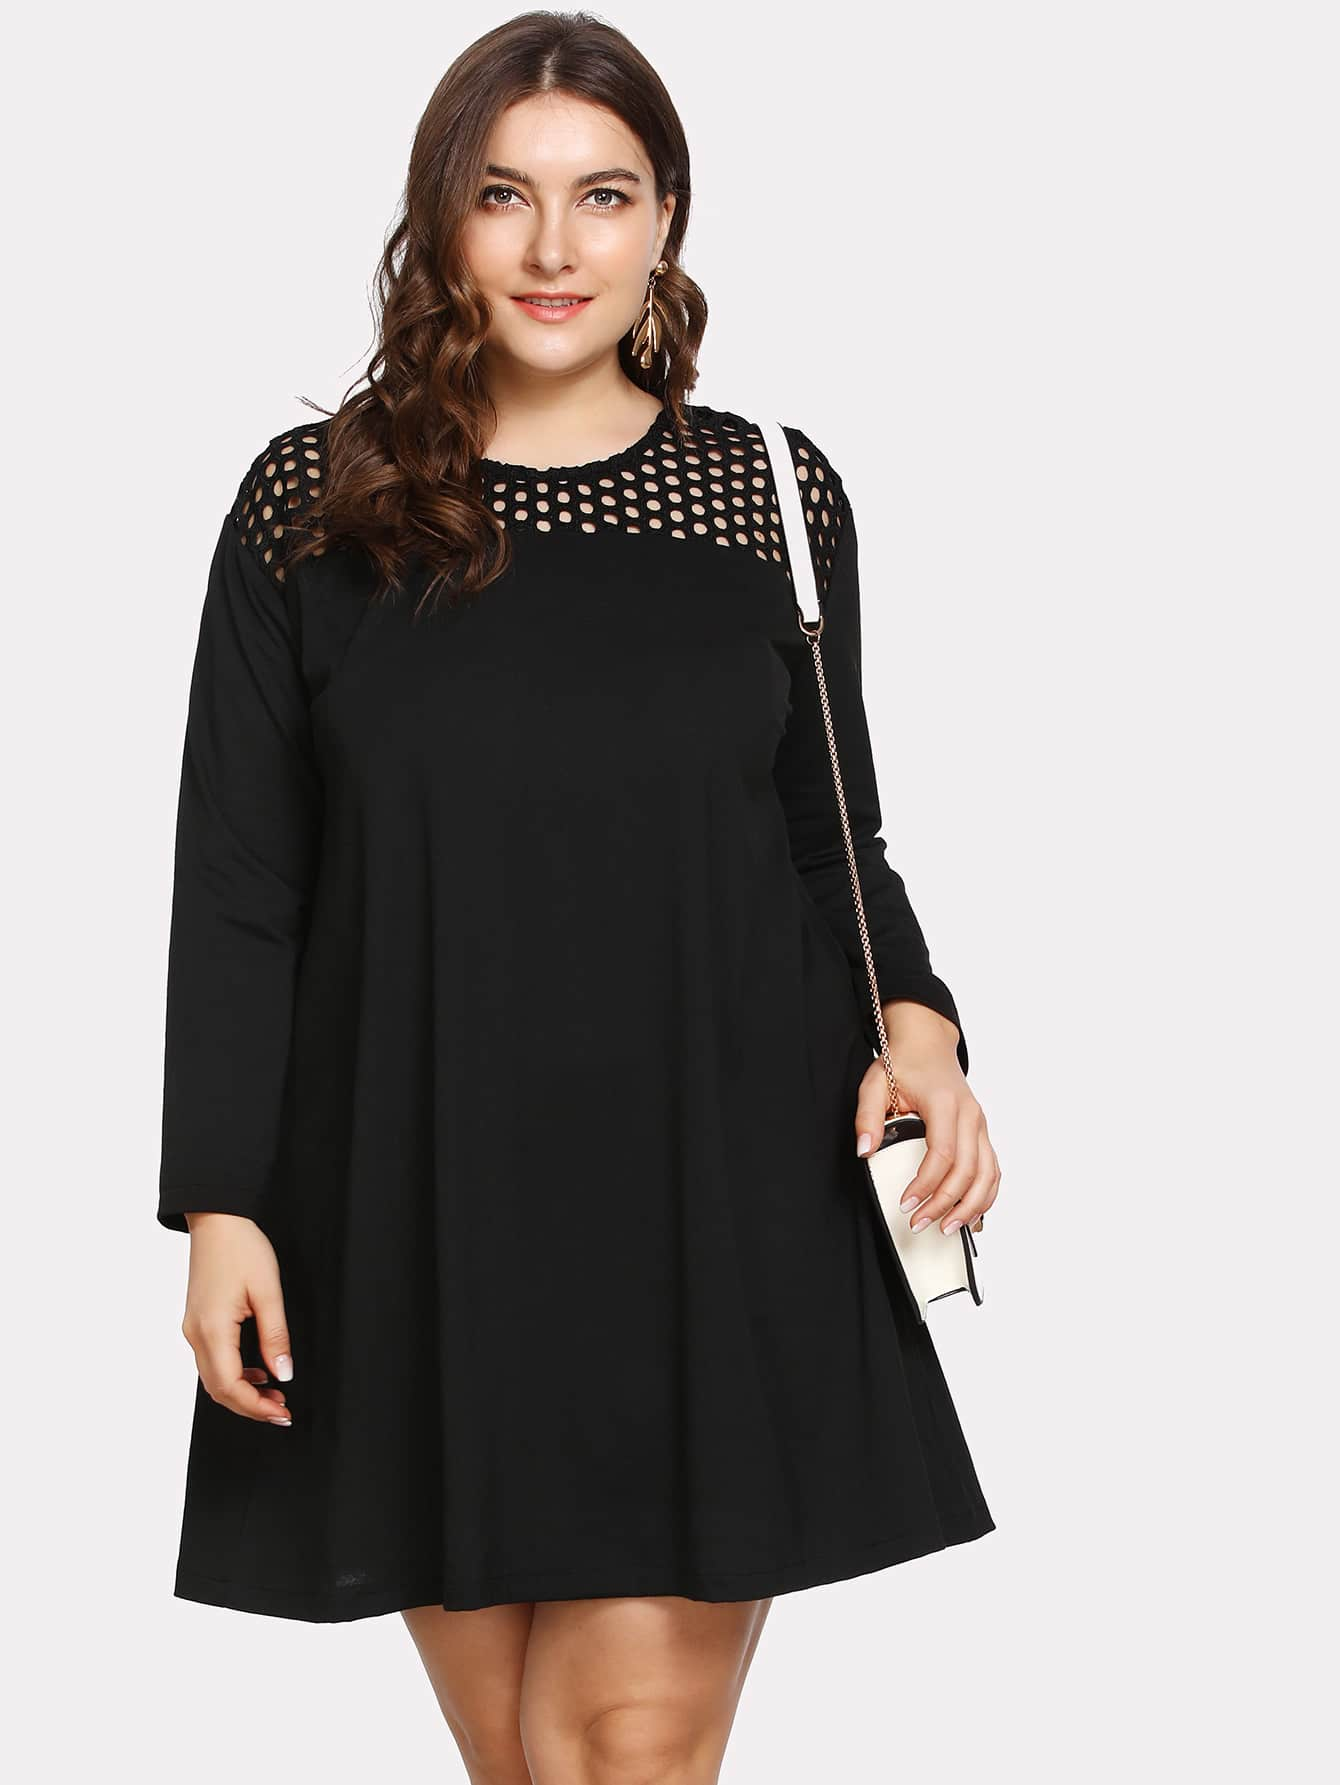 Plus Laser Cut Insert Tunic Dress детская одежда